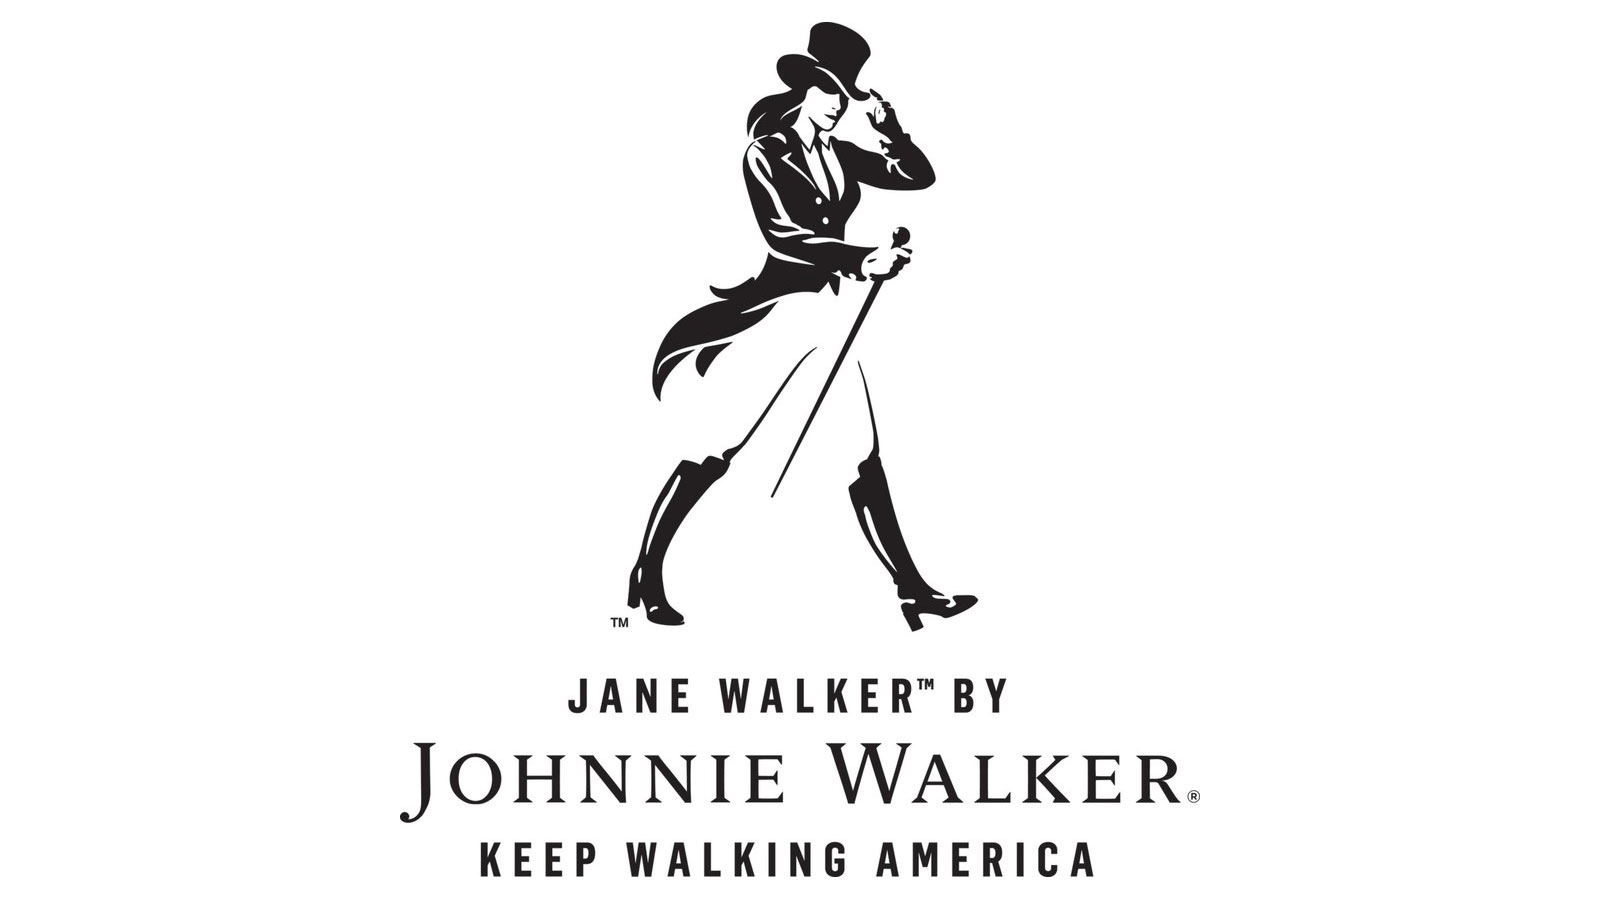 Introducing Jane Walker, the First Female Iteration for